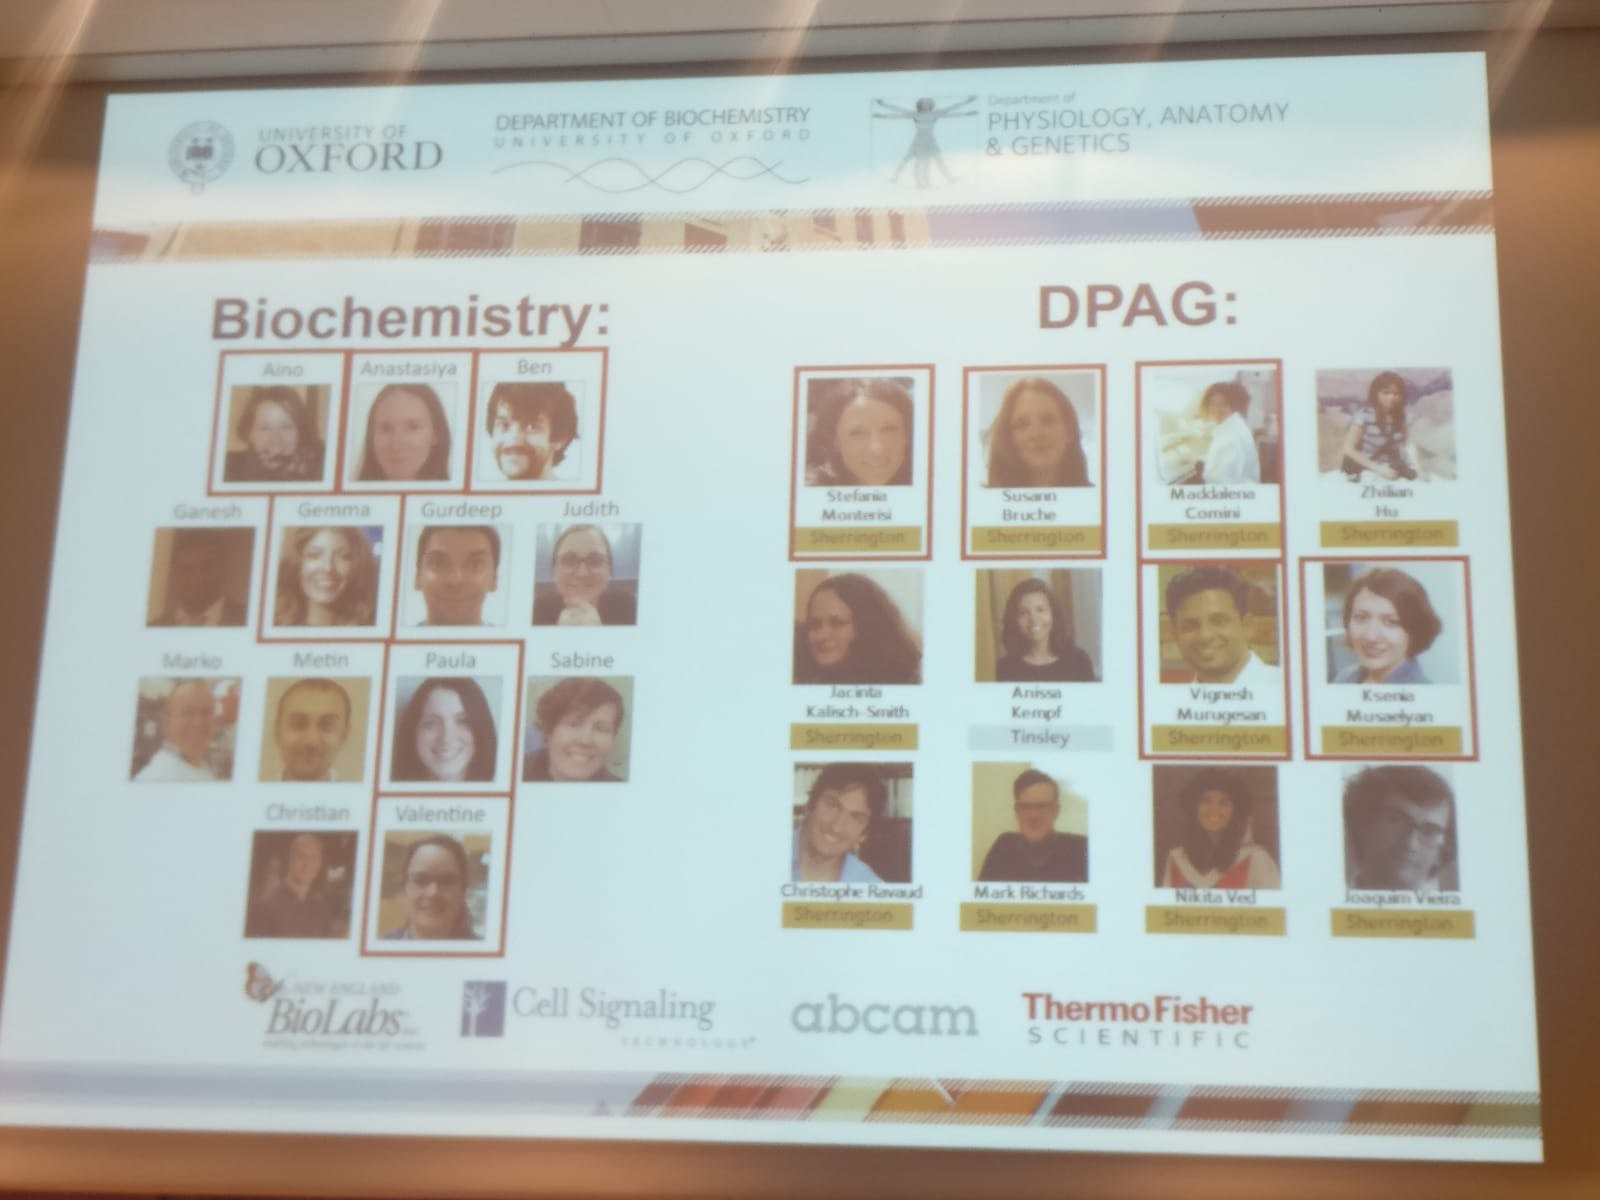 opening slide showing the Biochemistry and DPAG postdoc committees